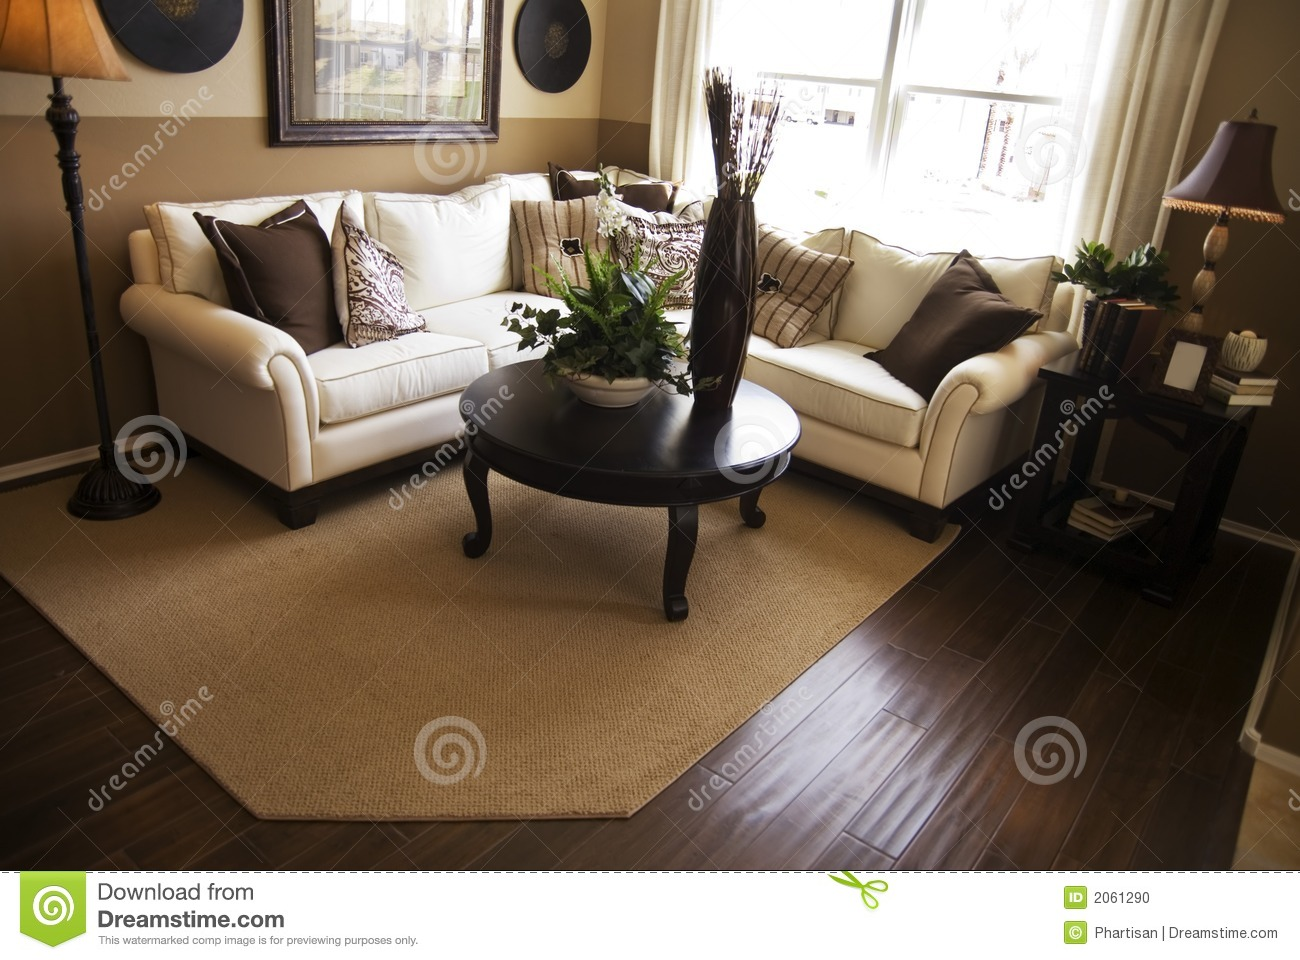 Hardwood flooring in living room stock photo image 2061290 Carpet or wooden floor in living room